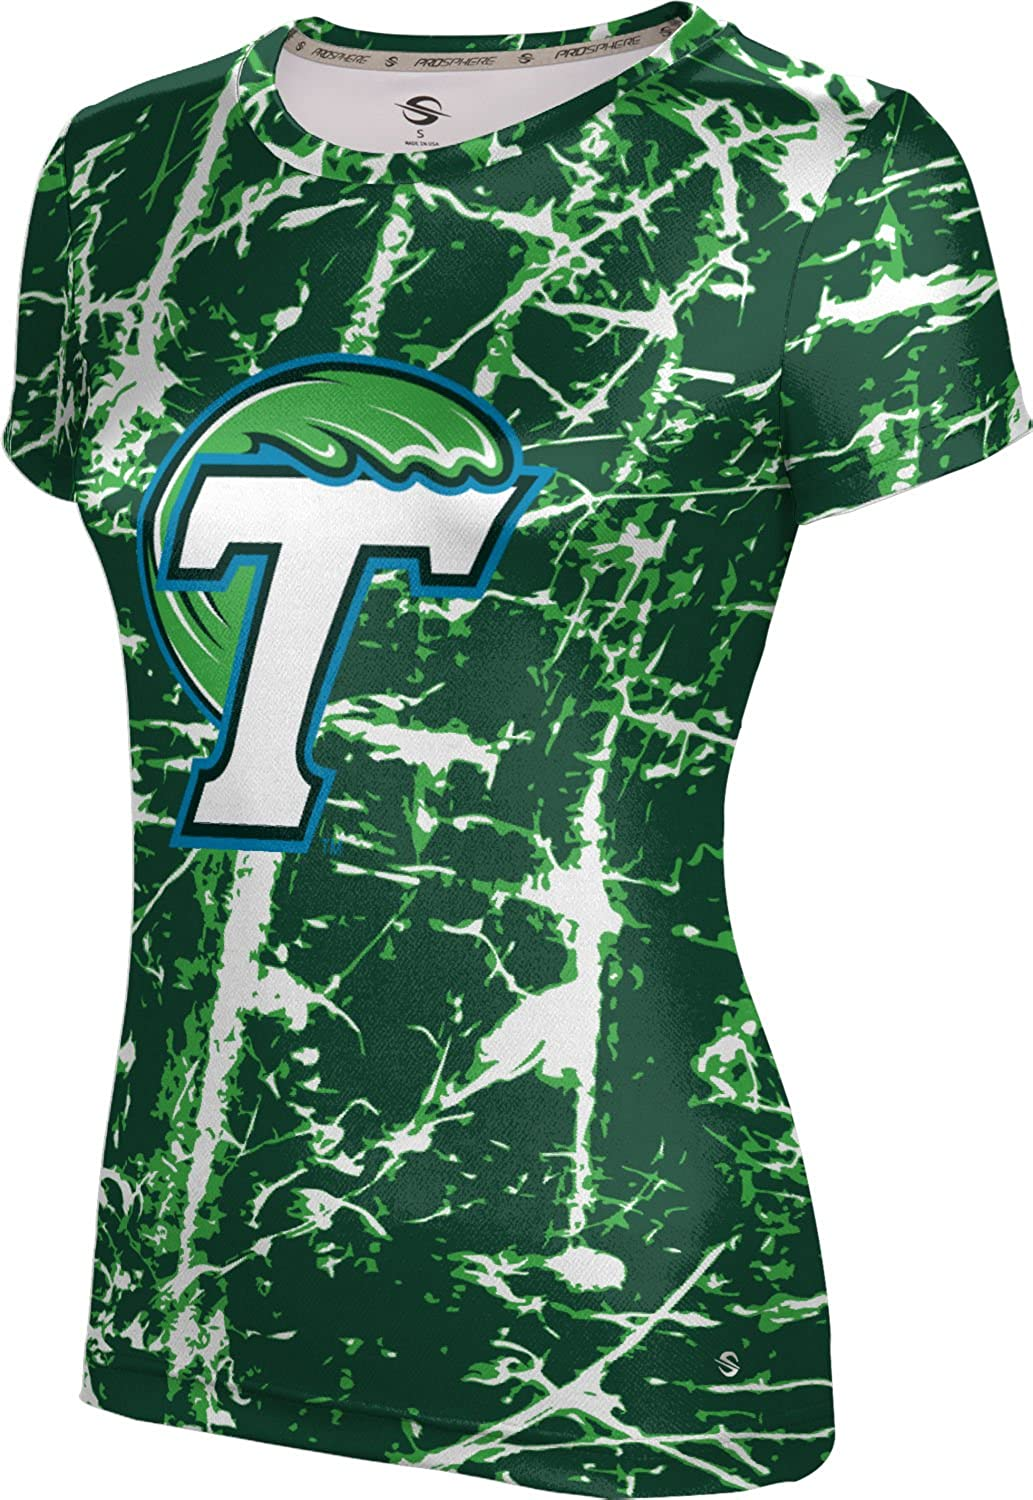 Distressed ProSphere Tulane University Girls Performance T-Shirt